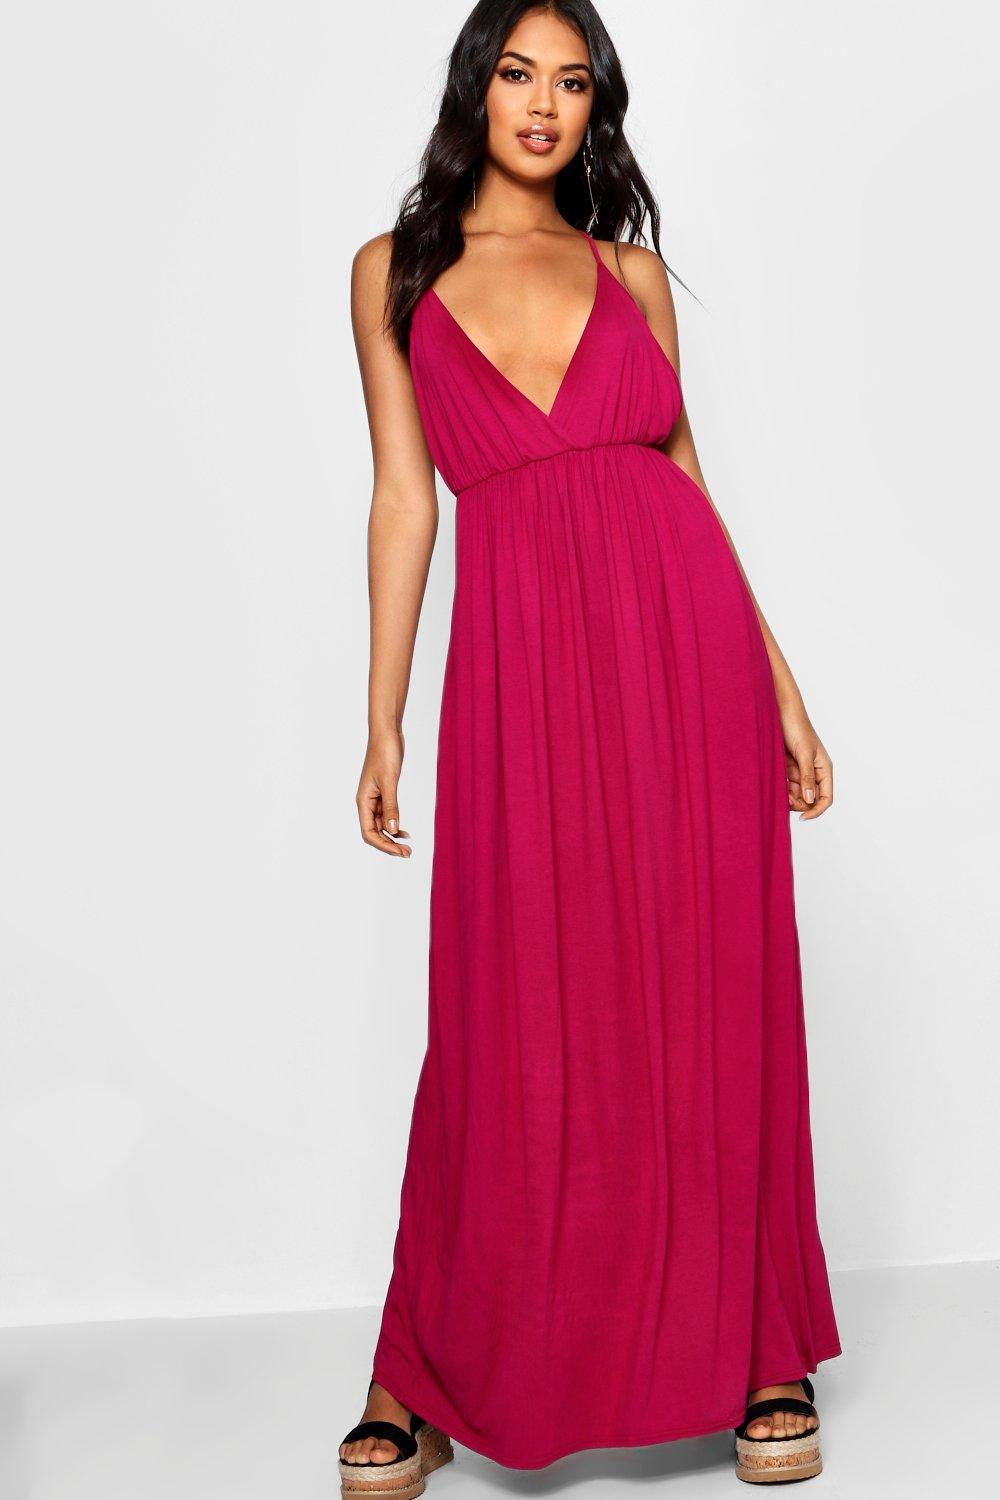 Supply Online Outlet Inexpensive Boohoo Plunge Floor Sweeping Maxi Dress Sale 2s1LhxCX